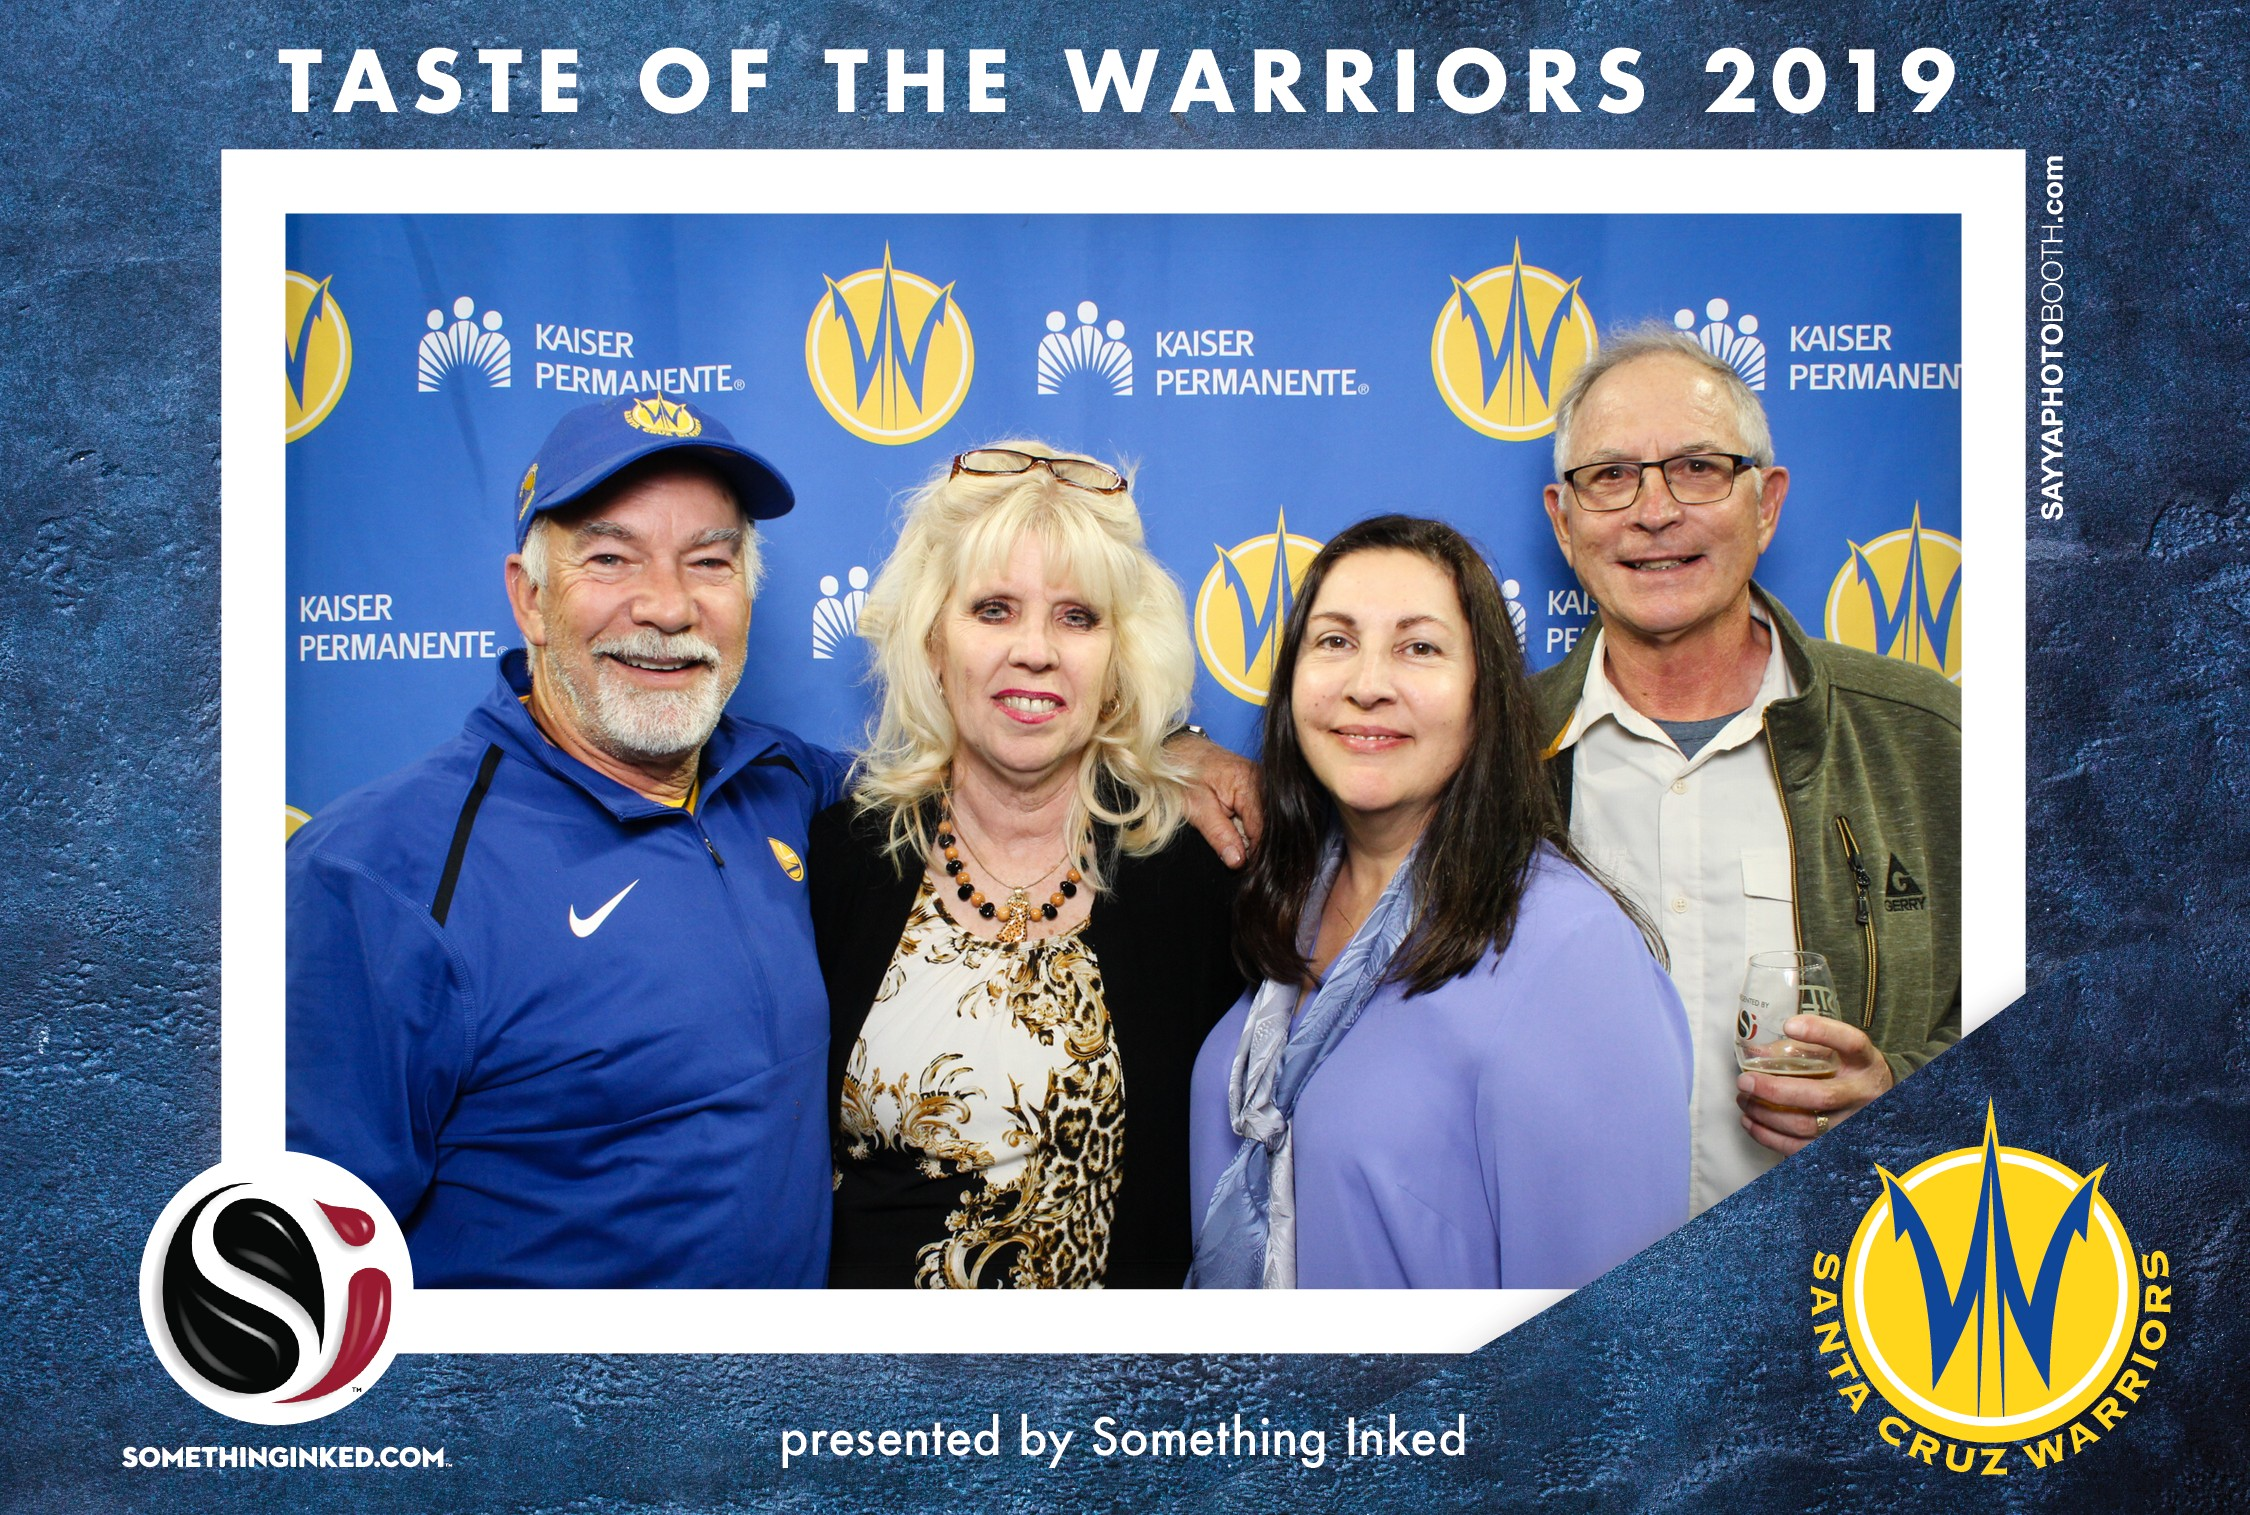 Taste of the Warriors